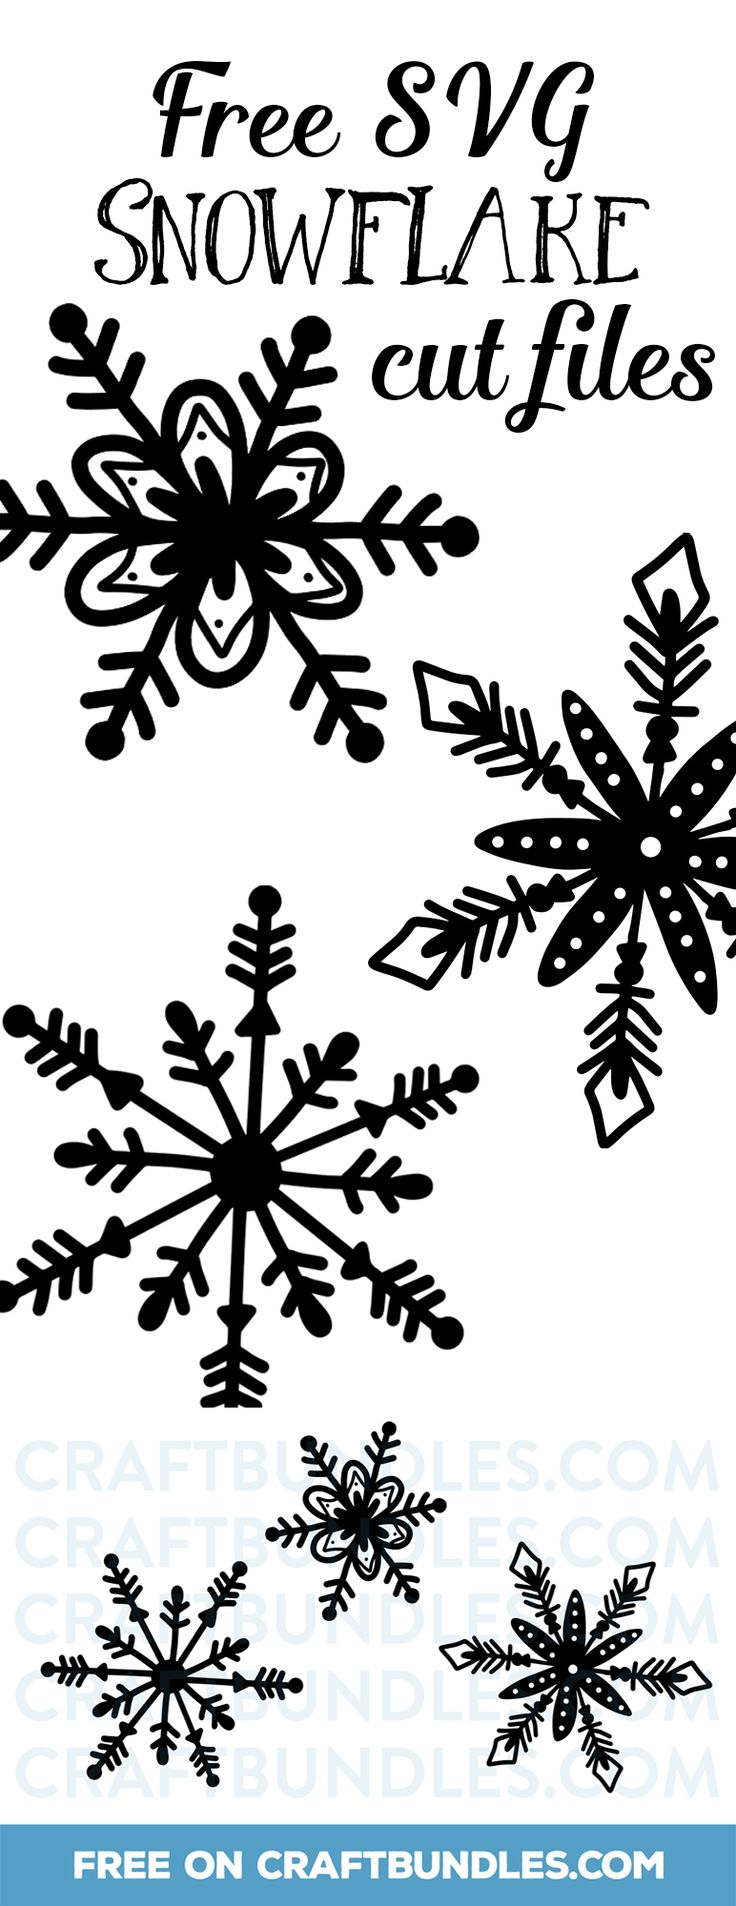 Free SVG Snowflake Cut Files